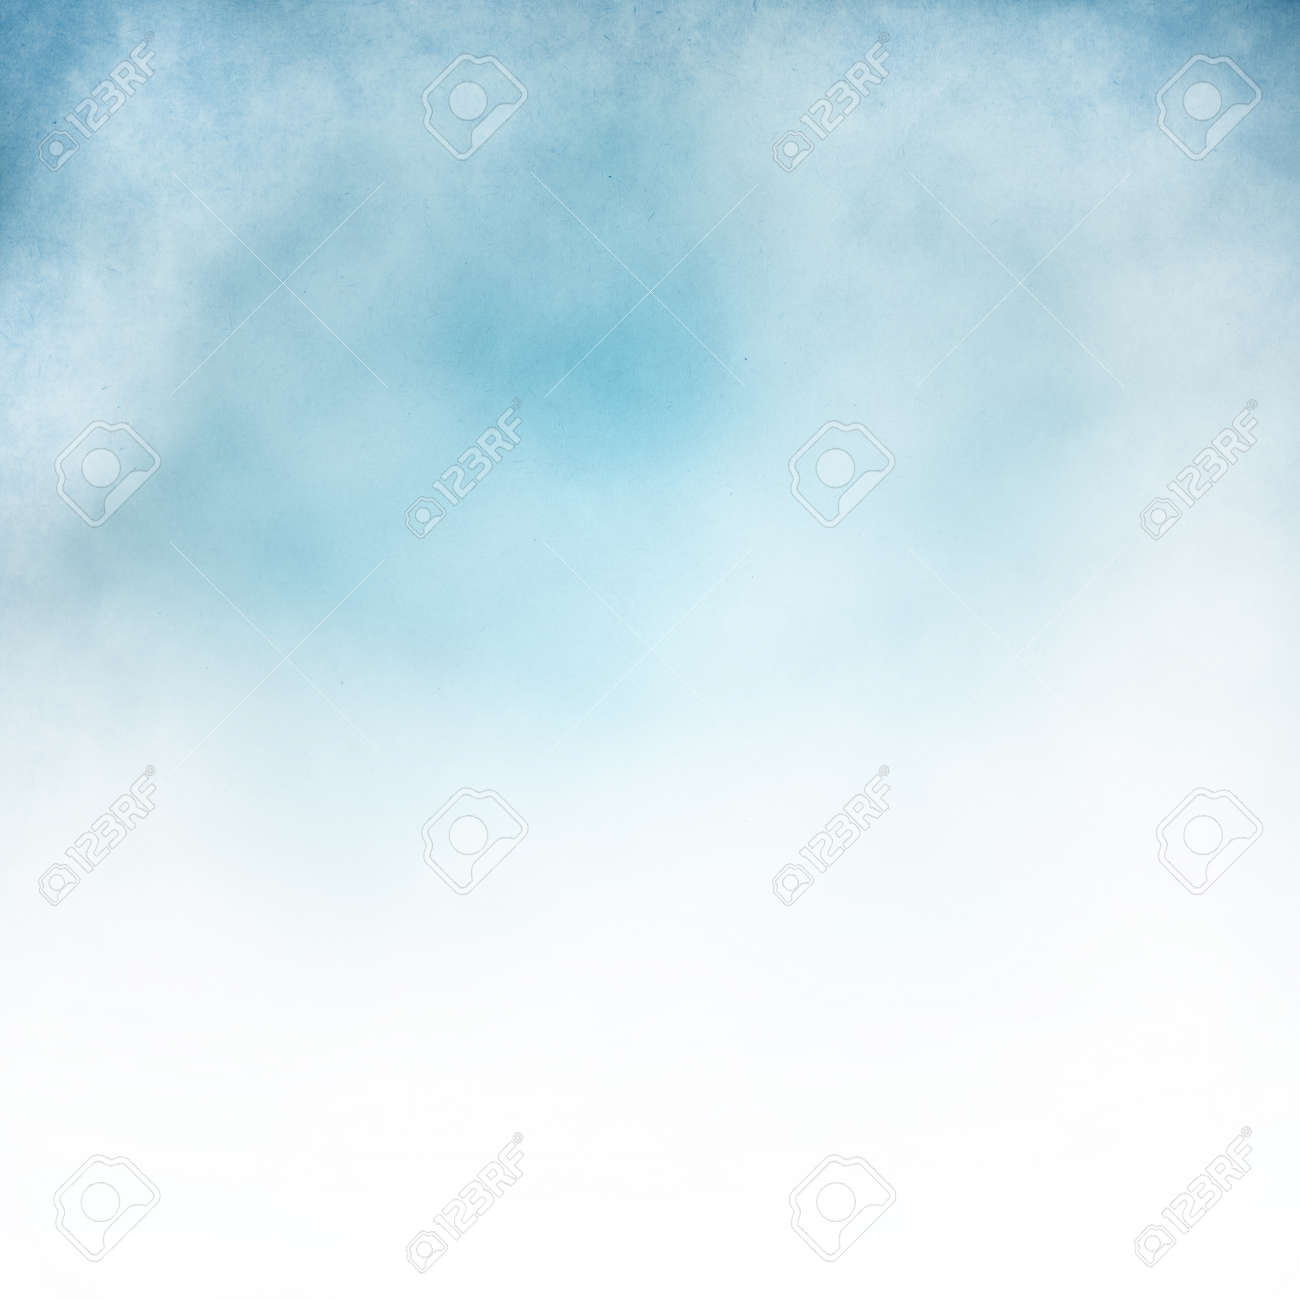 Abstract blue dirty paper texture background - 45136313